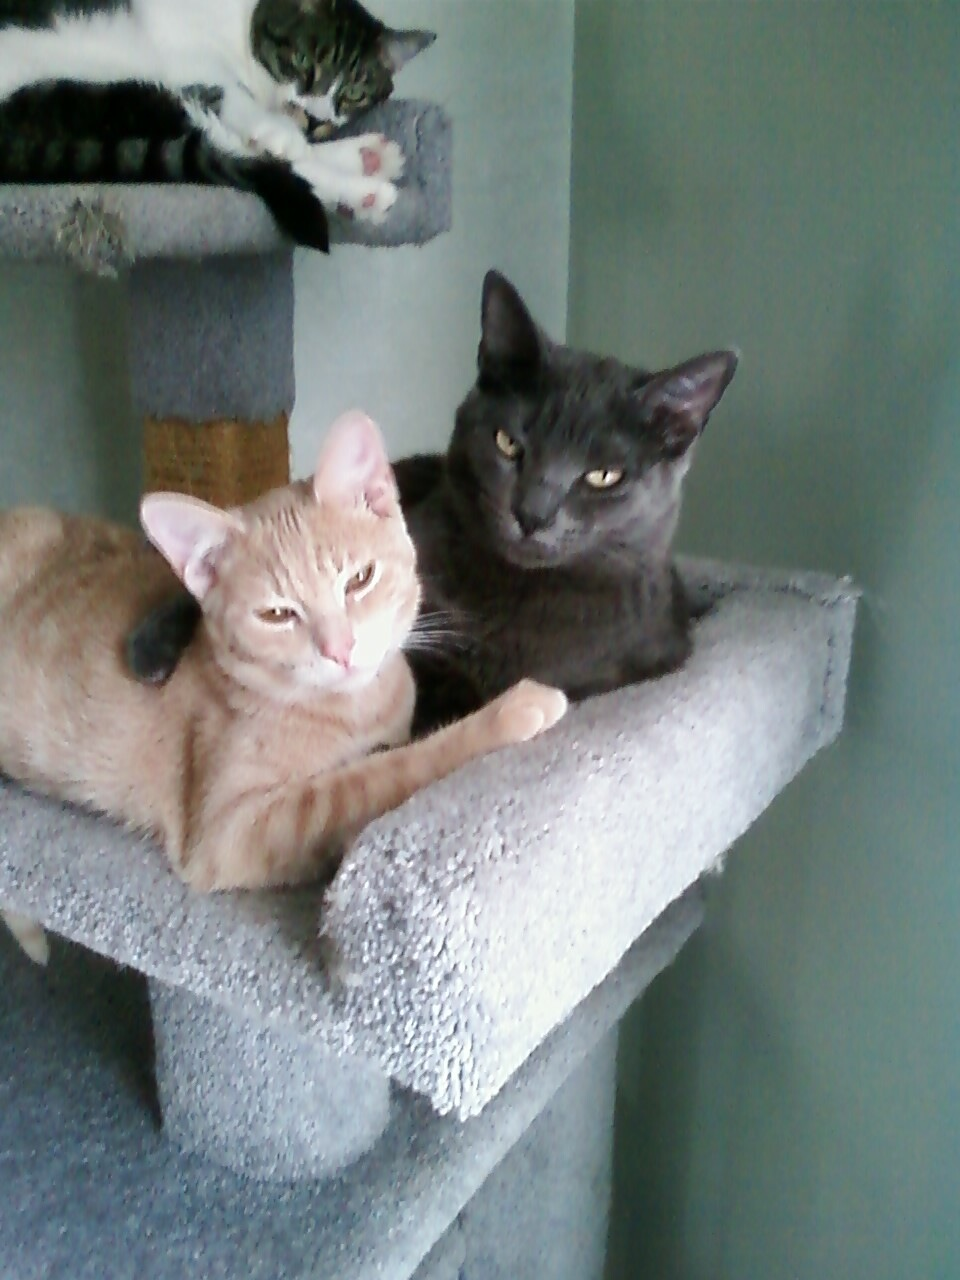 Dr di 39 s vetblog do indoor cats have stress you betcha for Having an indoor cat